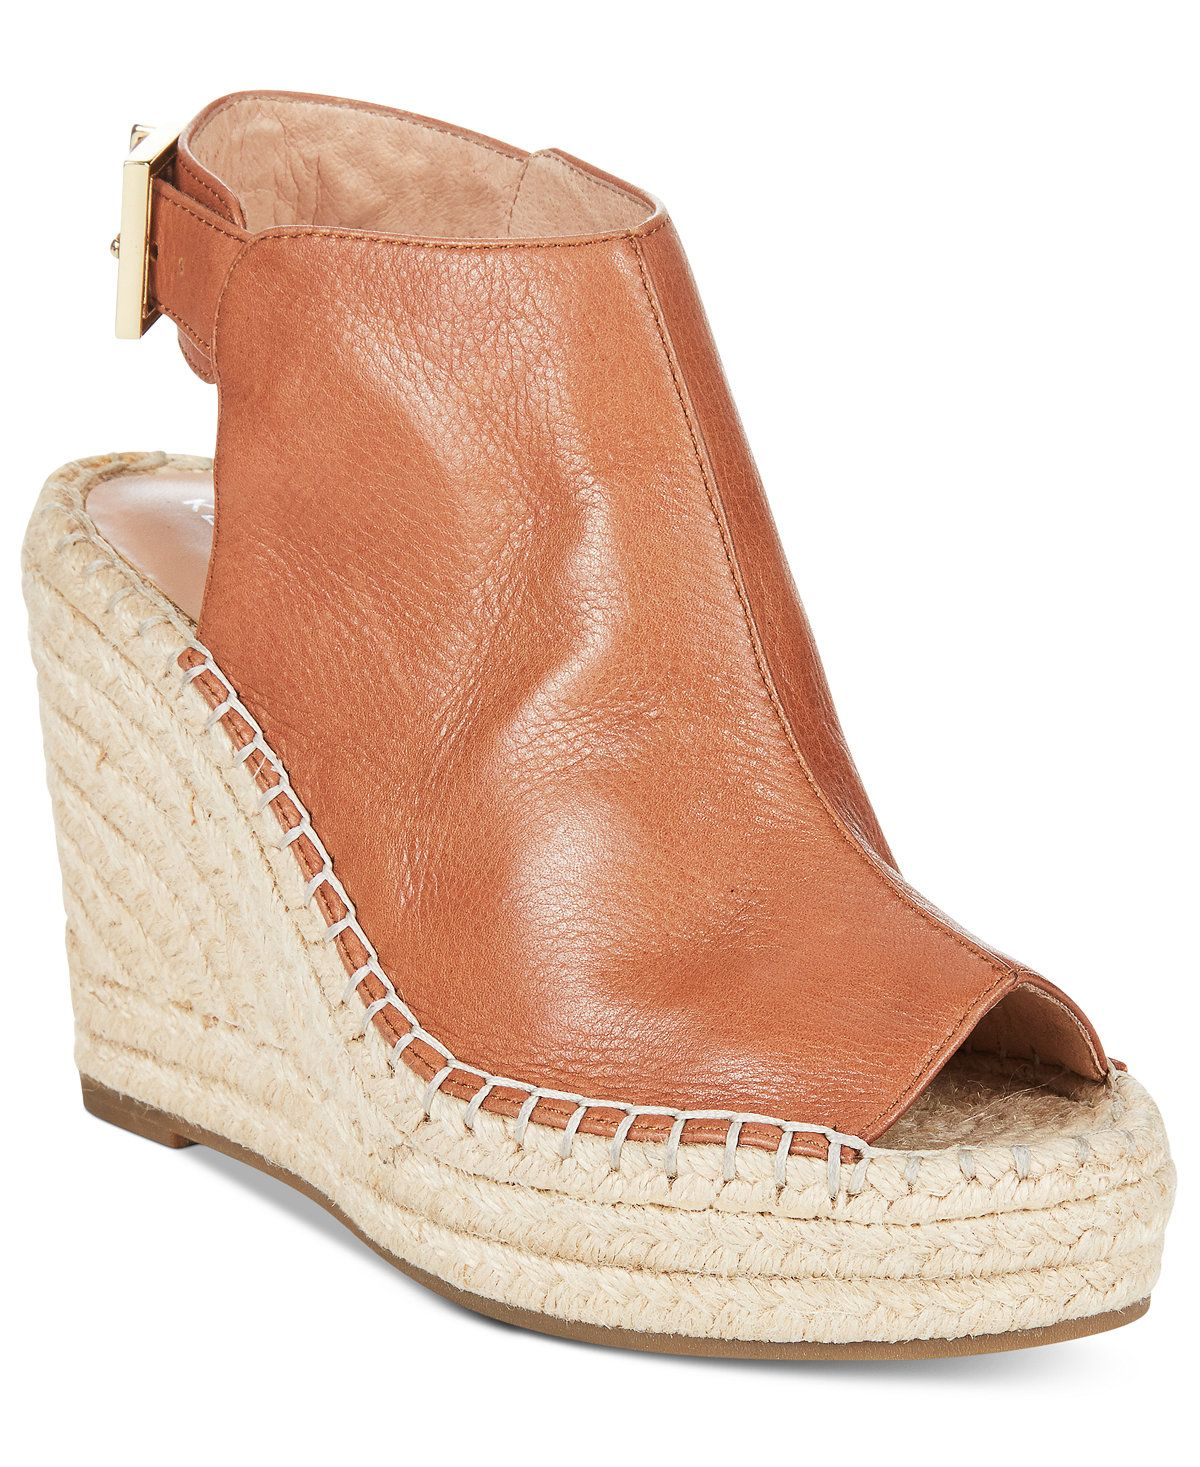 4bdf1453658 Kenneth Cole New York Women's Olivia Espadrille Peep-Toe Wedges ...